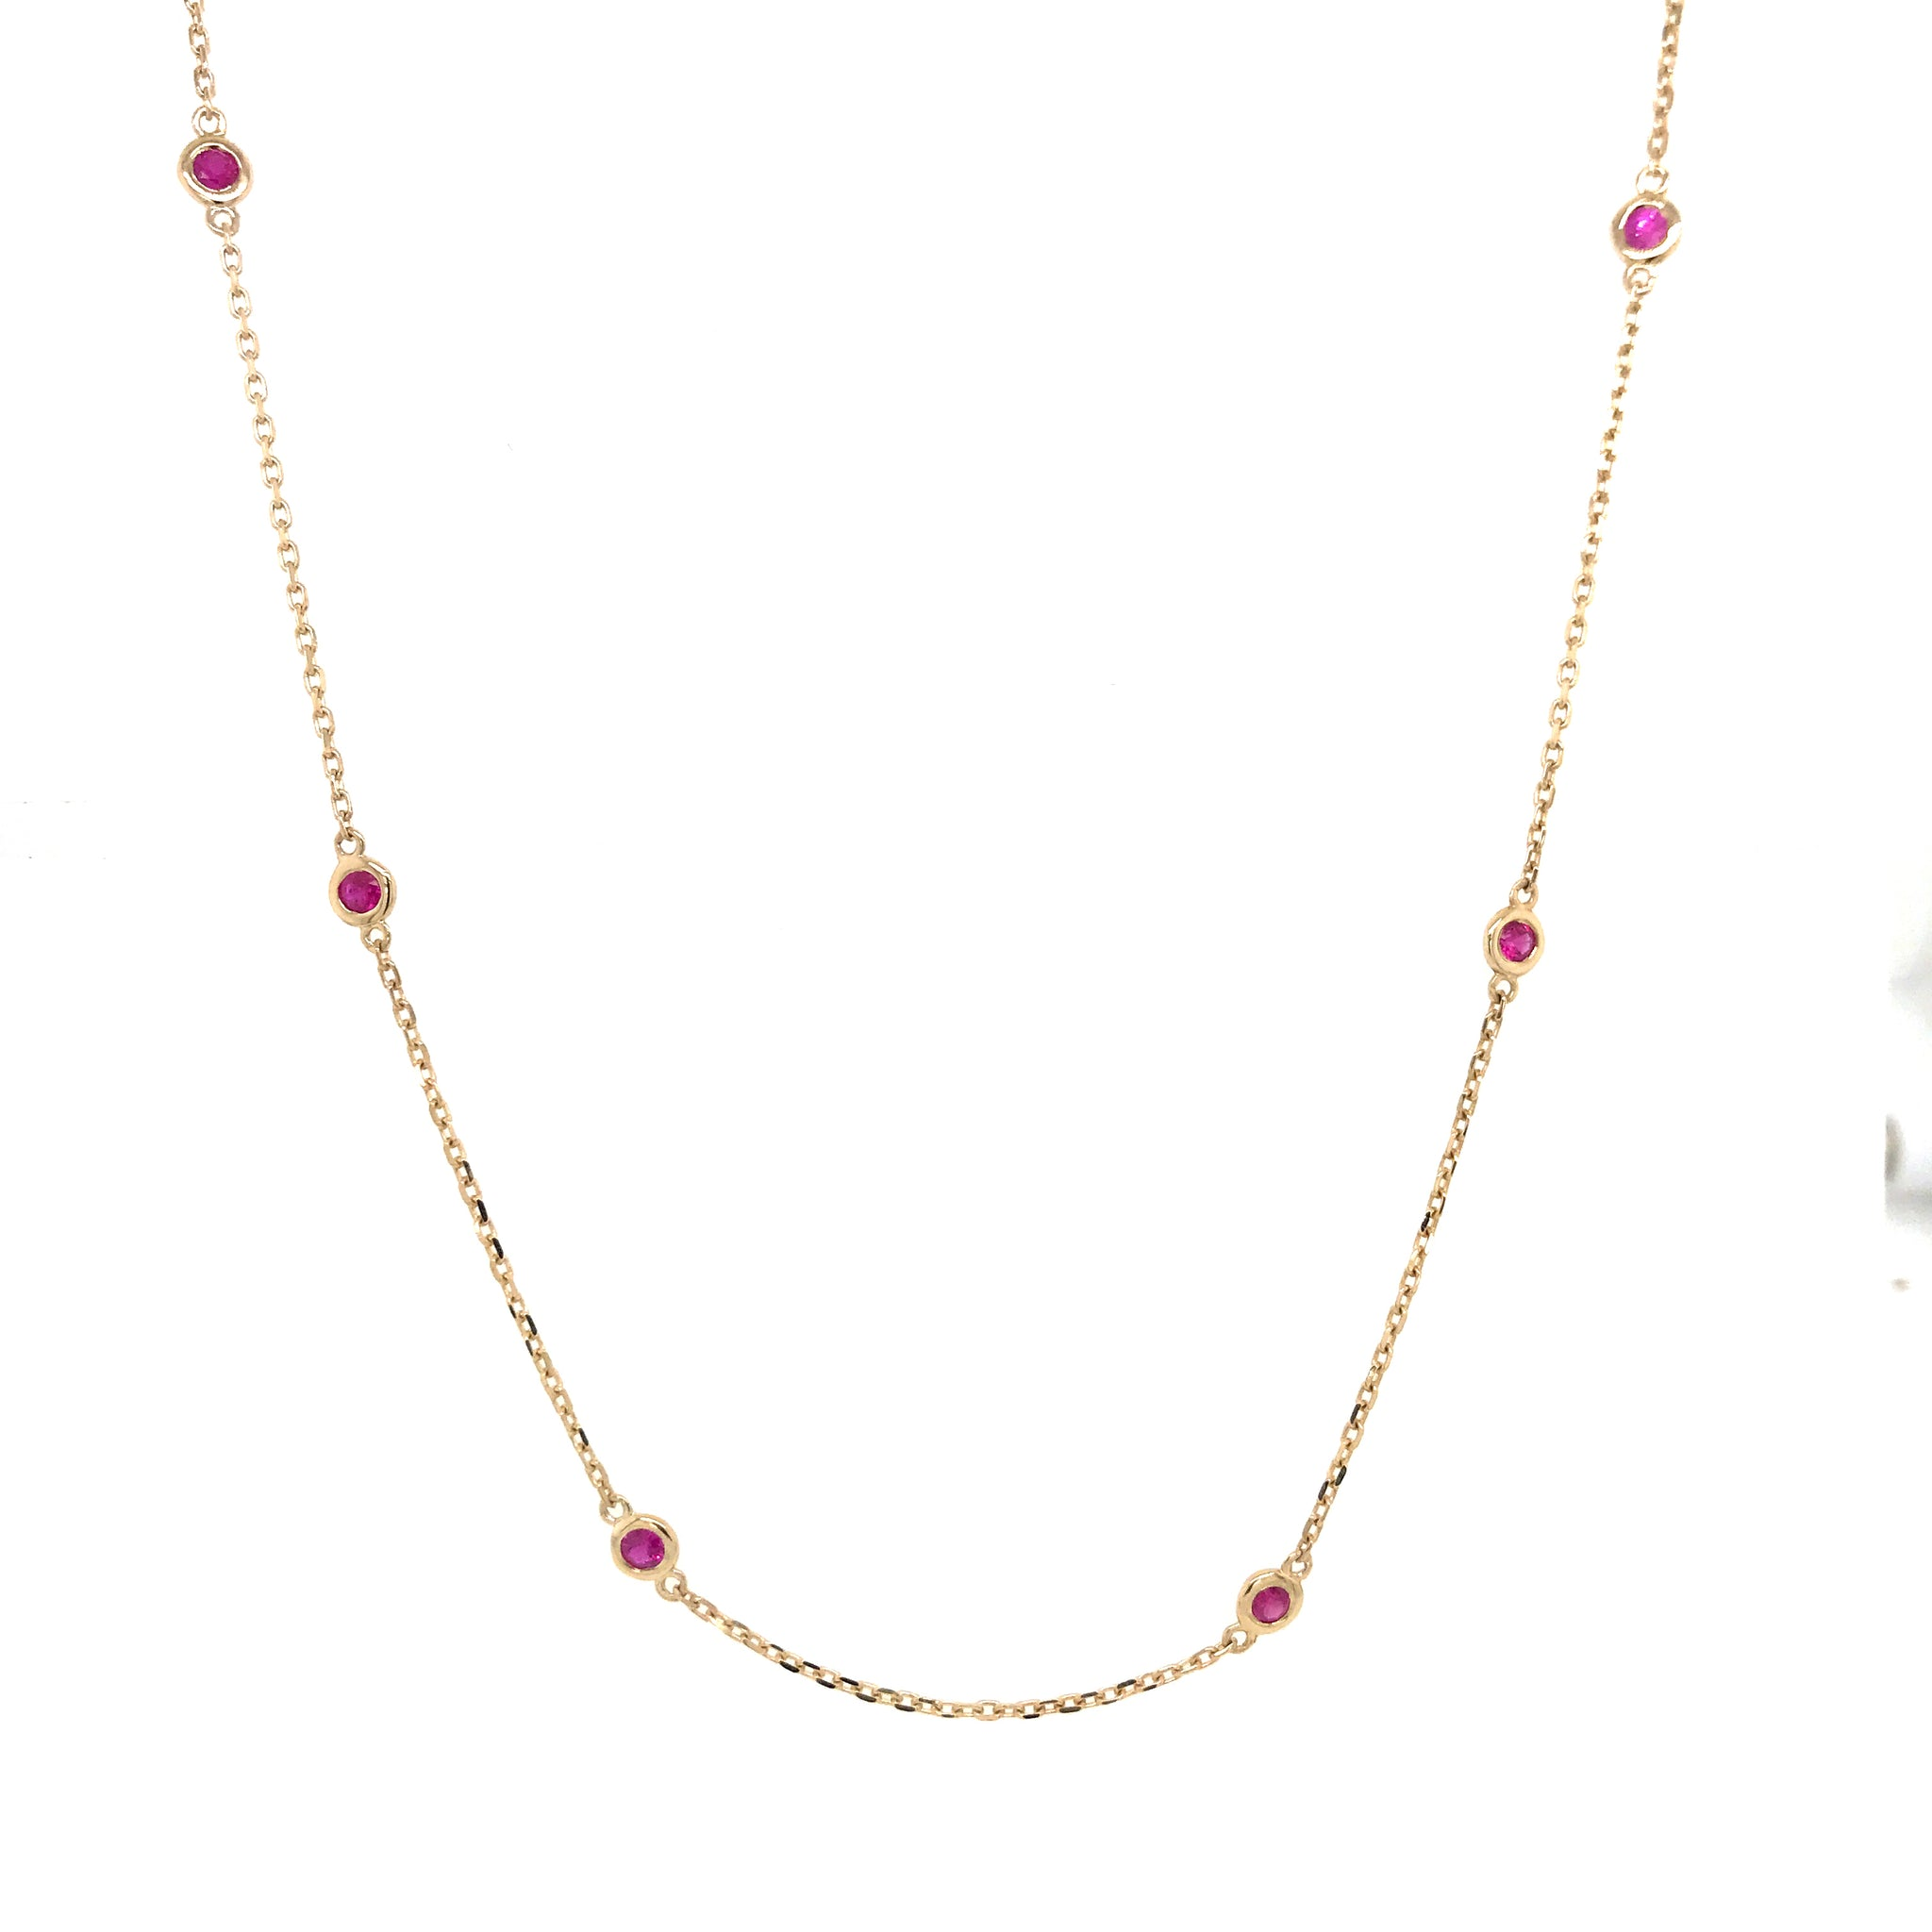 "14K Yellow Gold and Ruby Station Chain, Bezel Set Chain by the yard 18"" Necklace 0.90 ct"